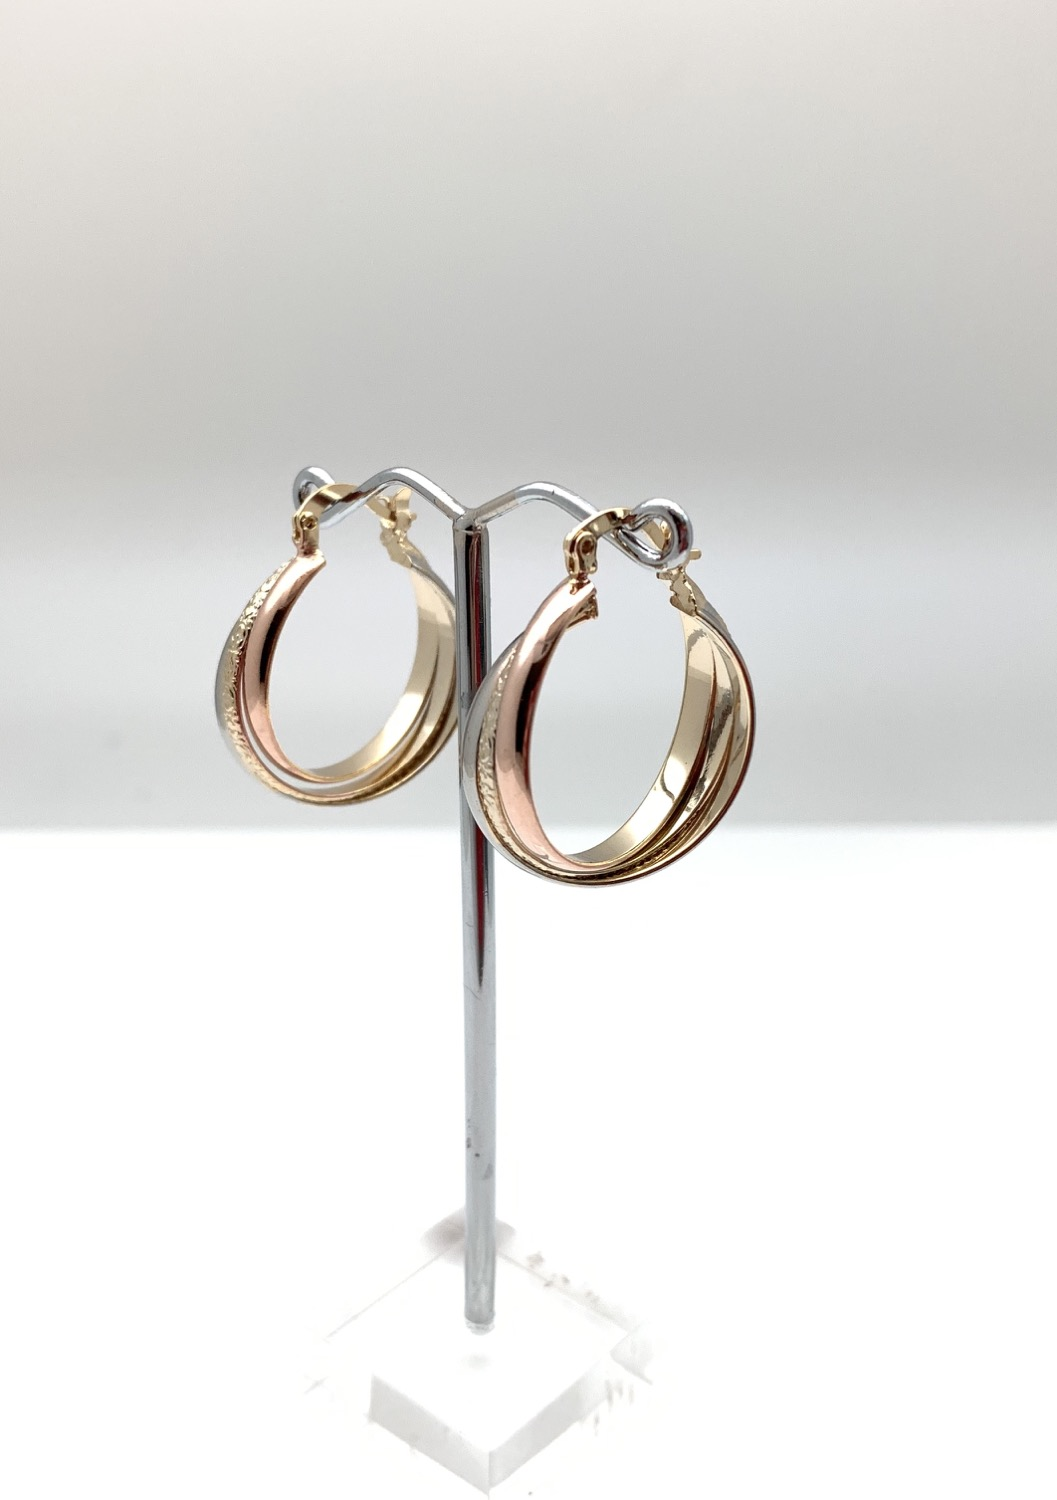 H126 Tricolor Small Medium Hoop, Best Selling